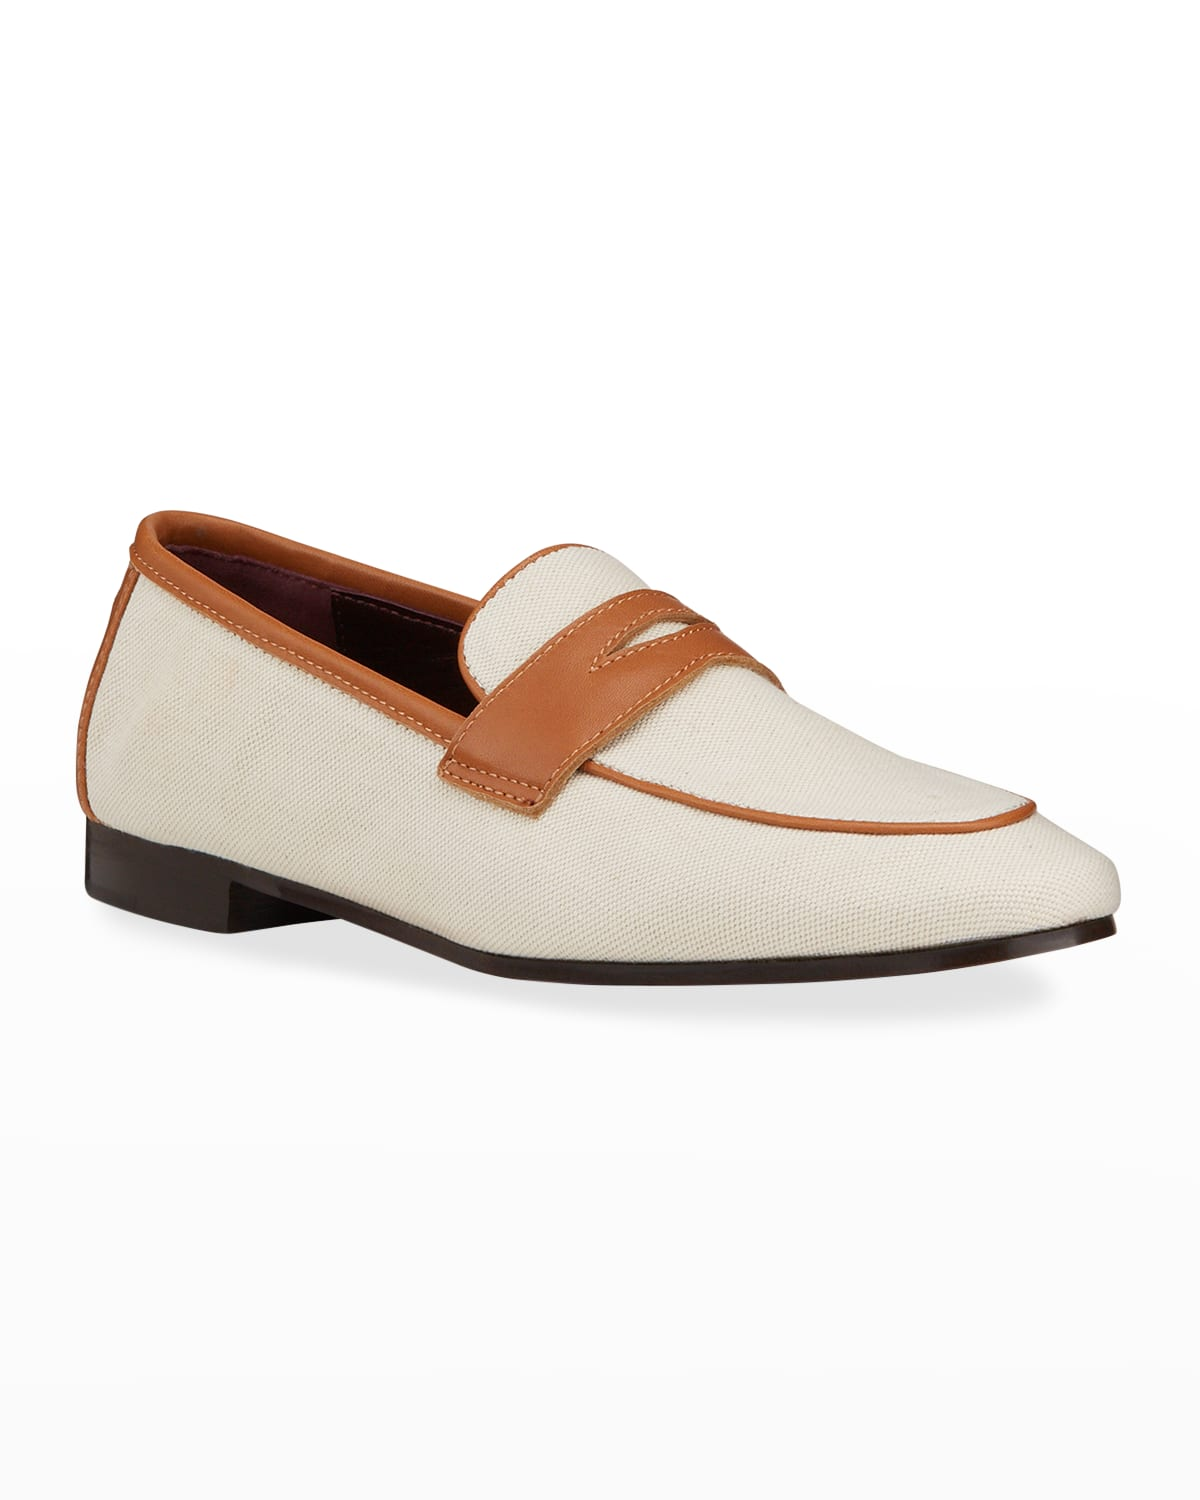 Bicolor Linen Penny Loafers